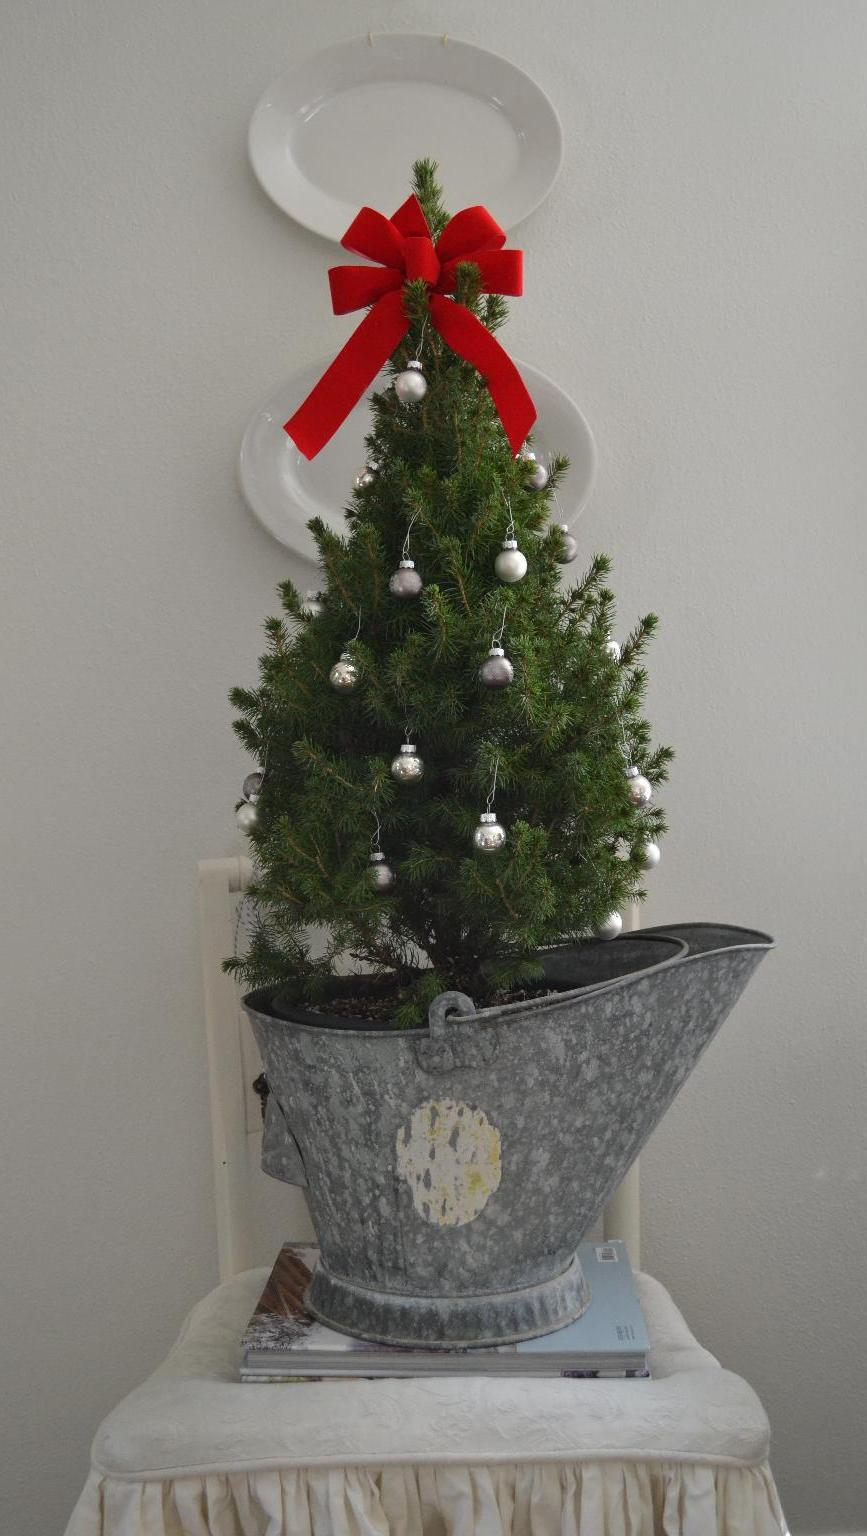 Cottage Fix - Christmas tree adorned with silver ornaments in a galvanized ash bucket